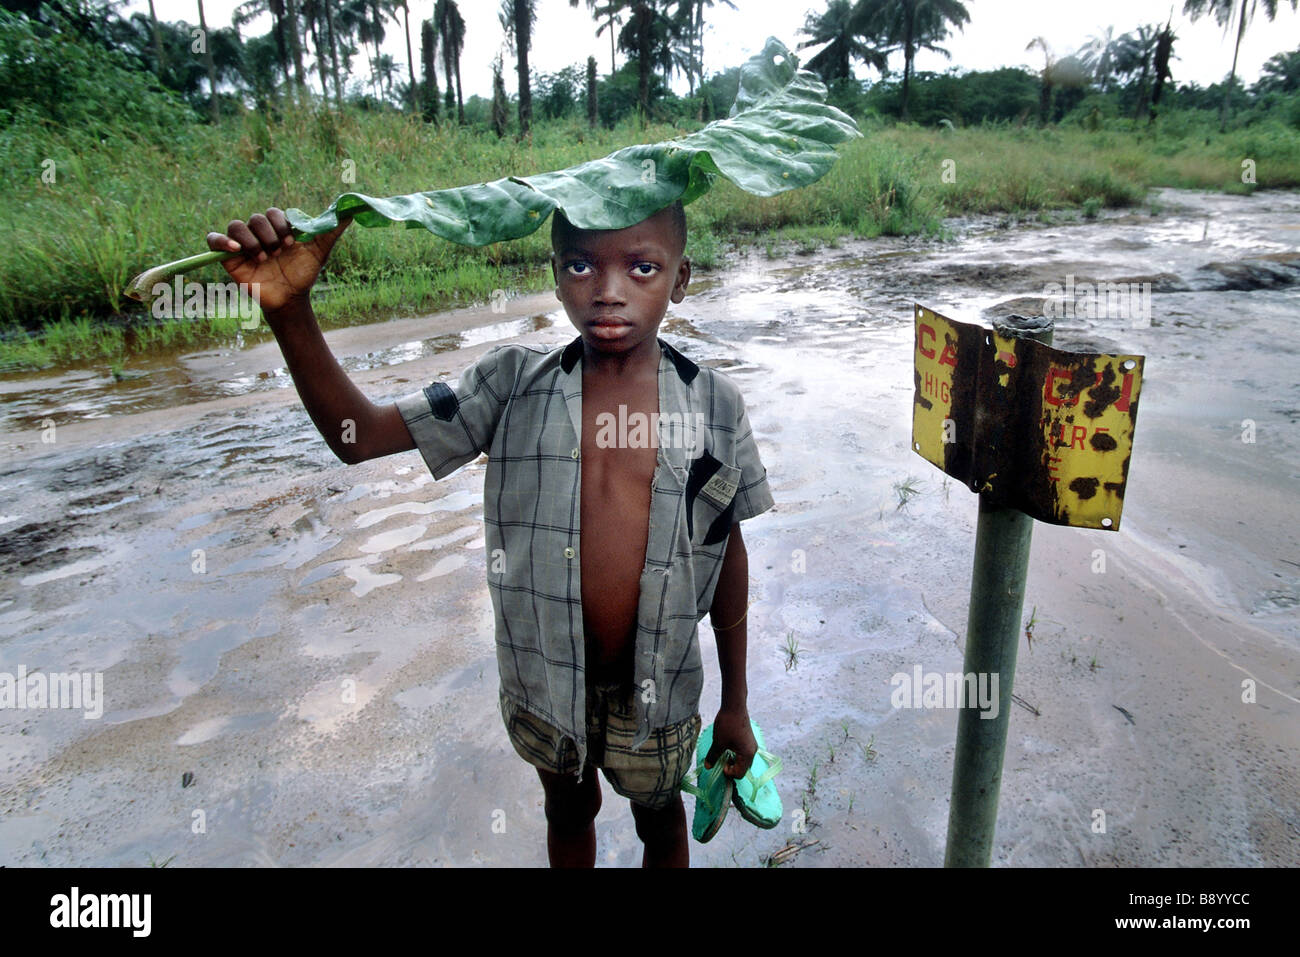 Nigeria: A boy stands besides a danger sign by oil contaminated area in Ogoniland - Stock Image